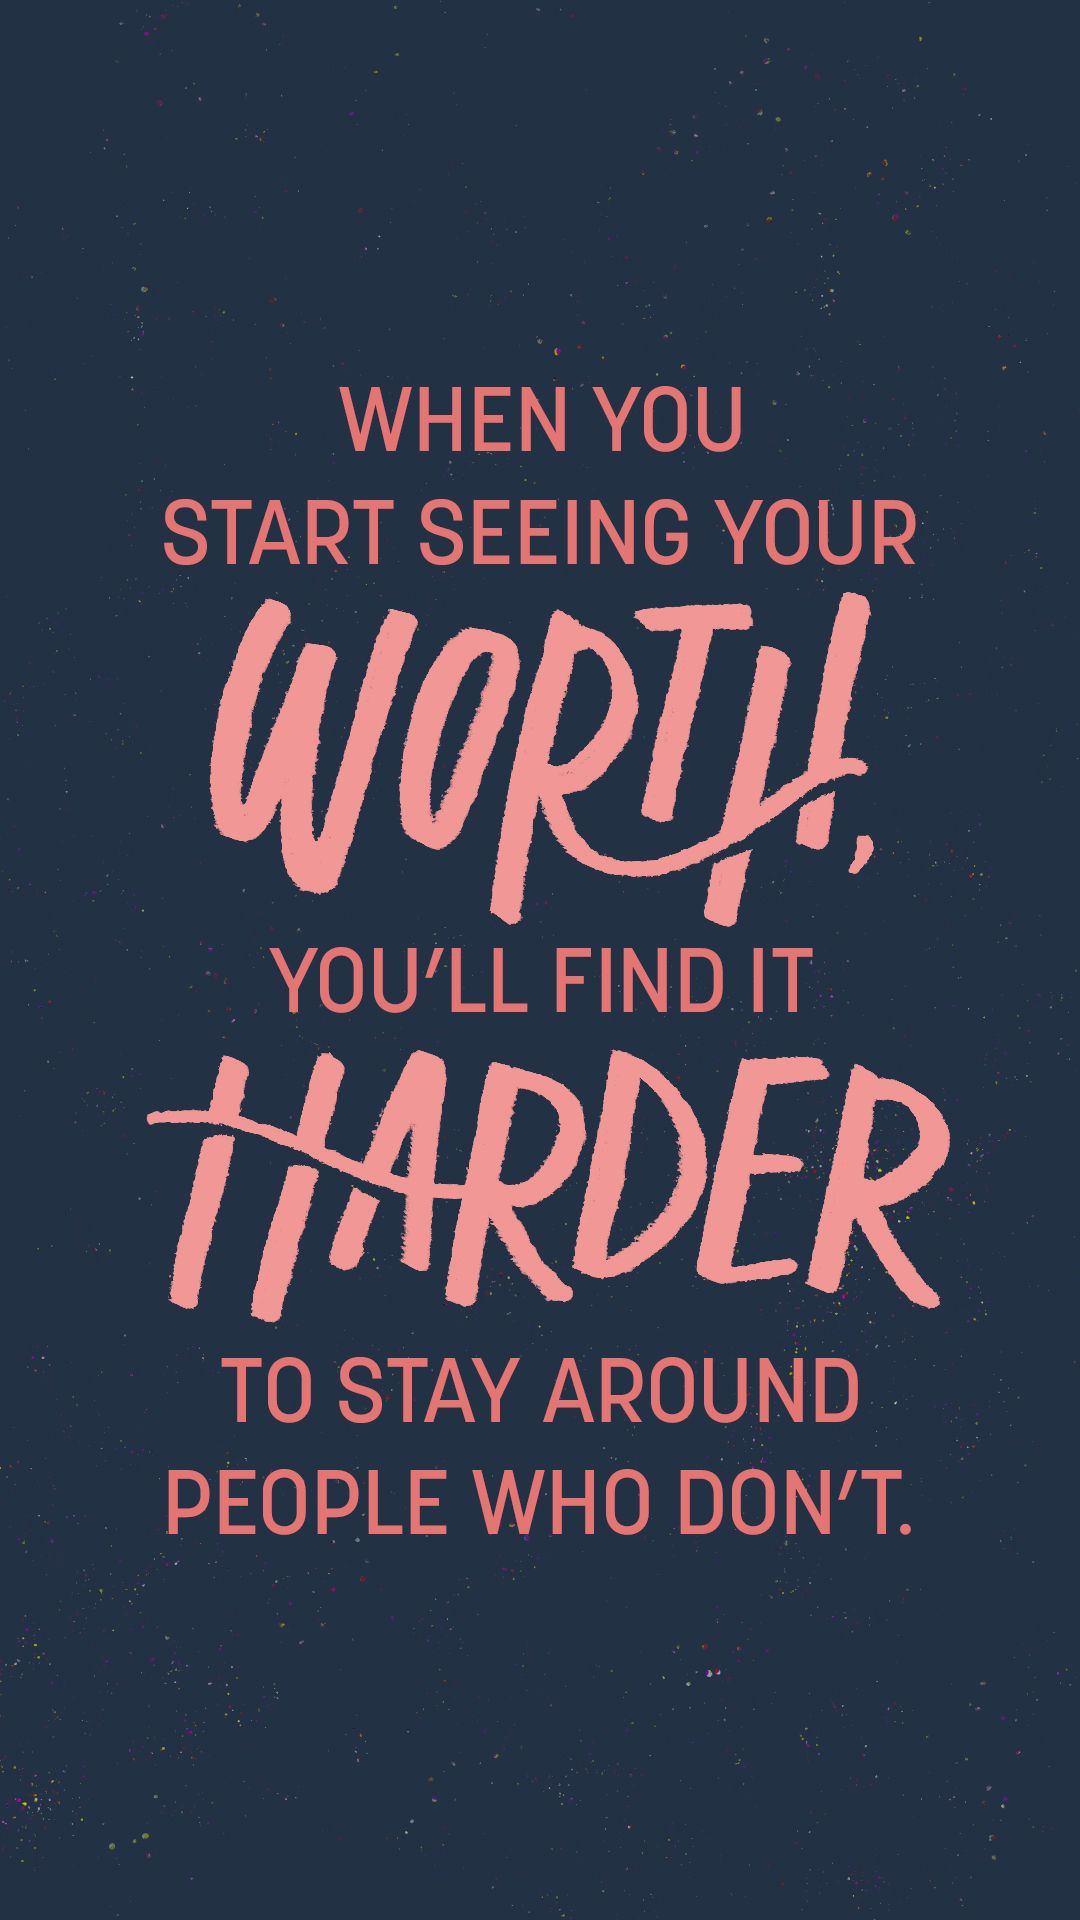 [Image] When you start seeing your worth, you will find it harder to stay around the people who don't.